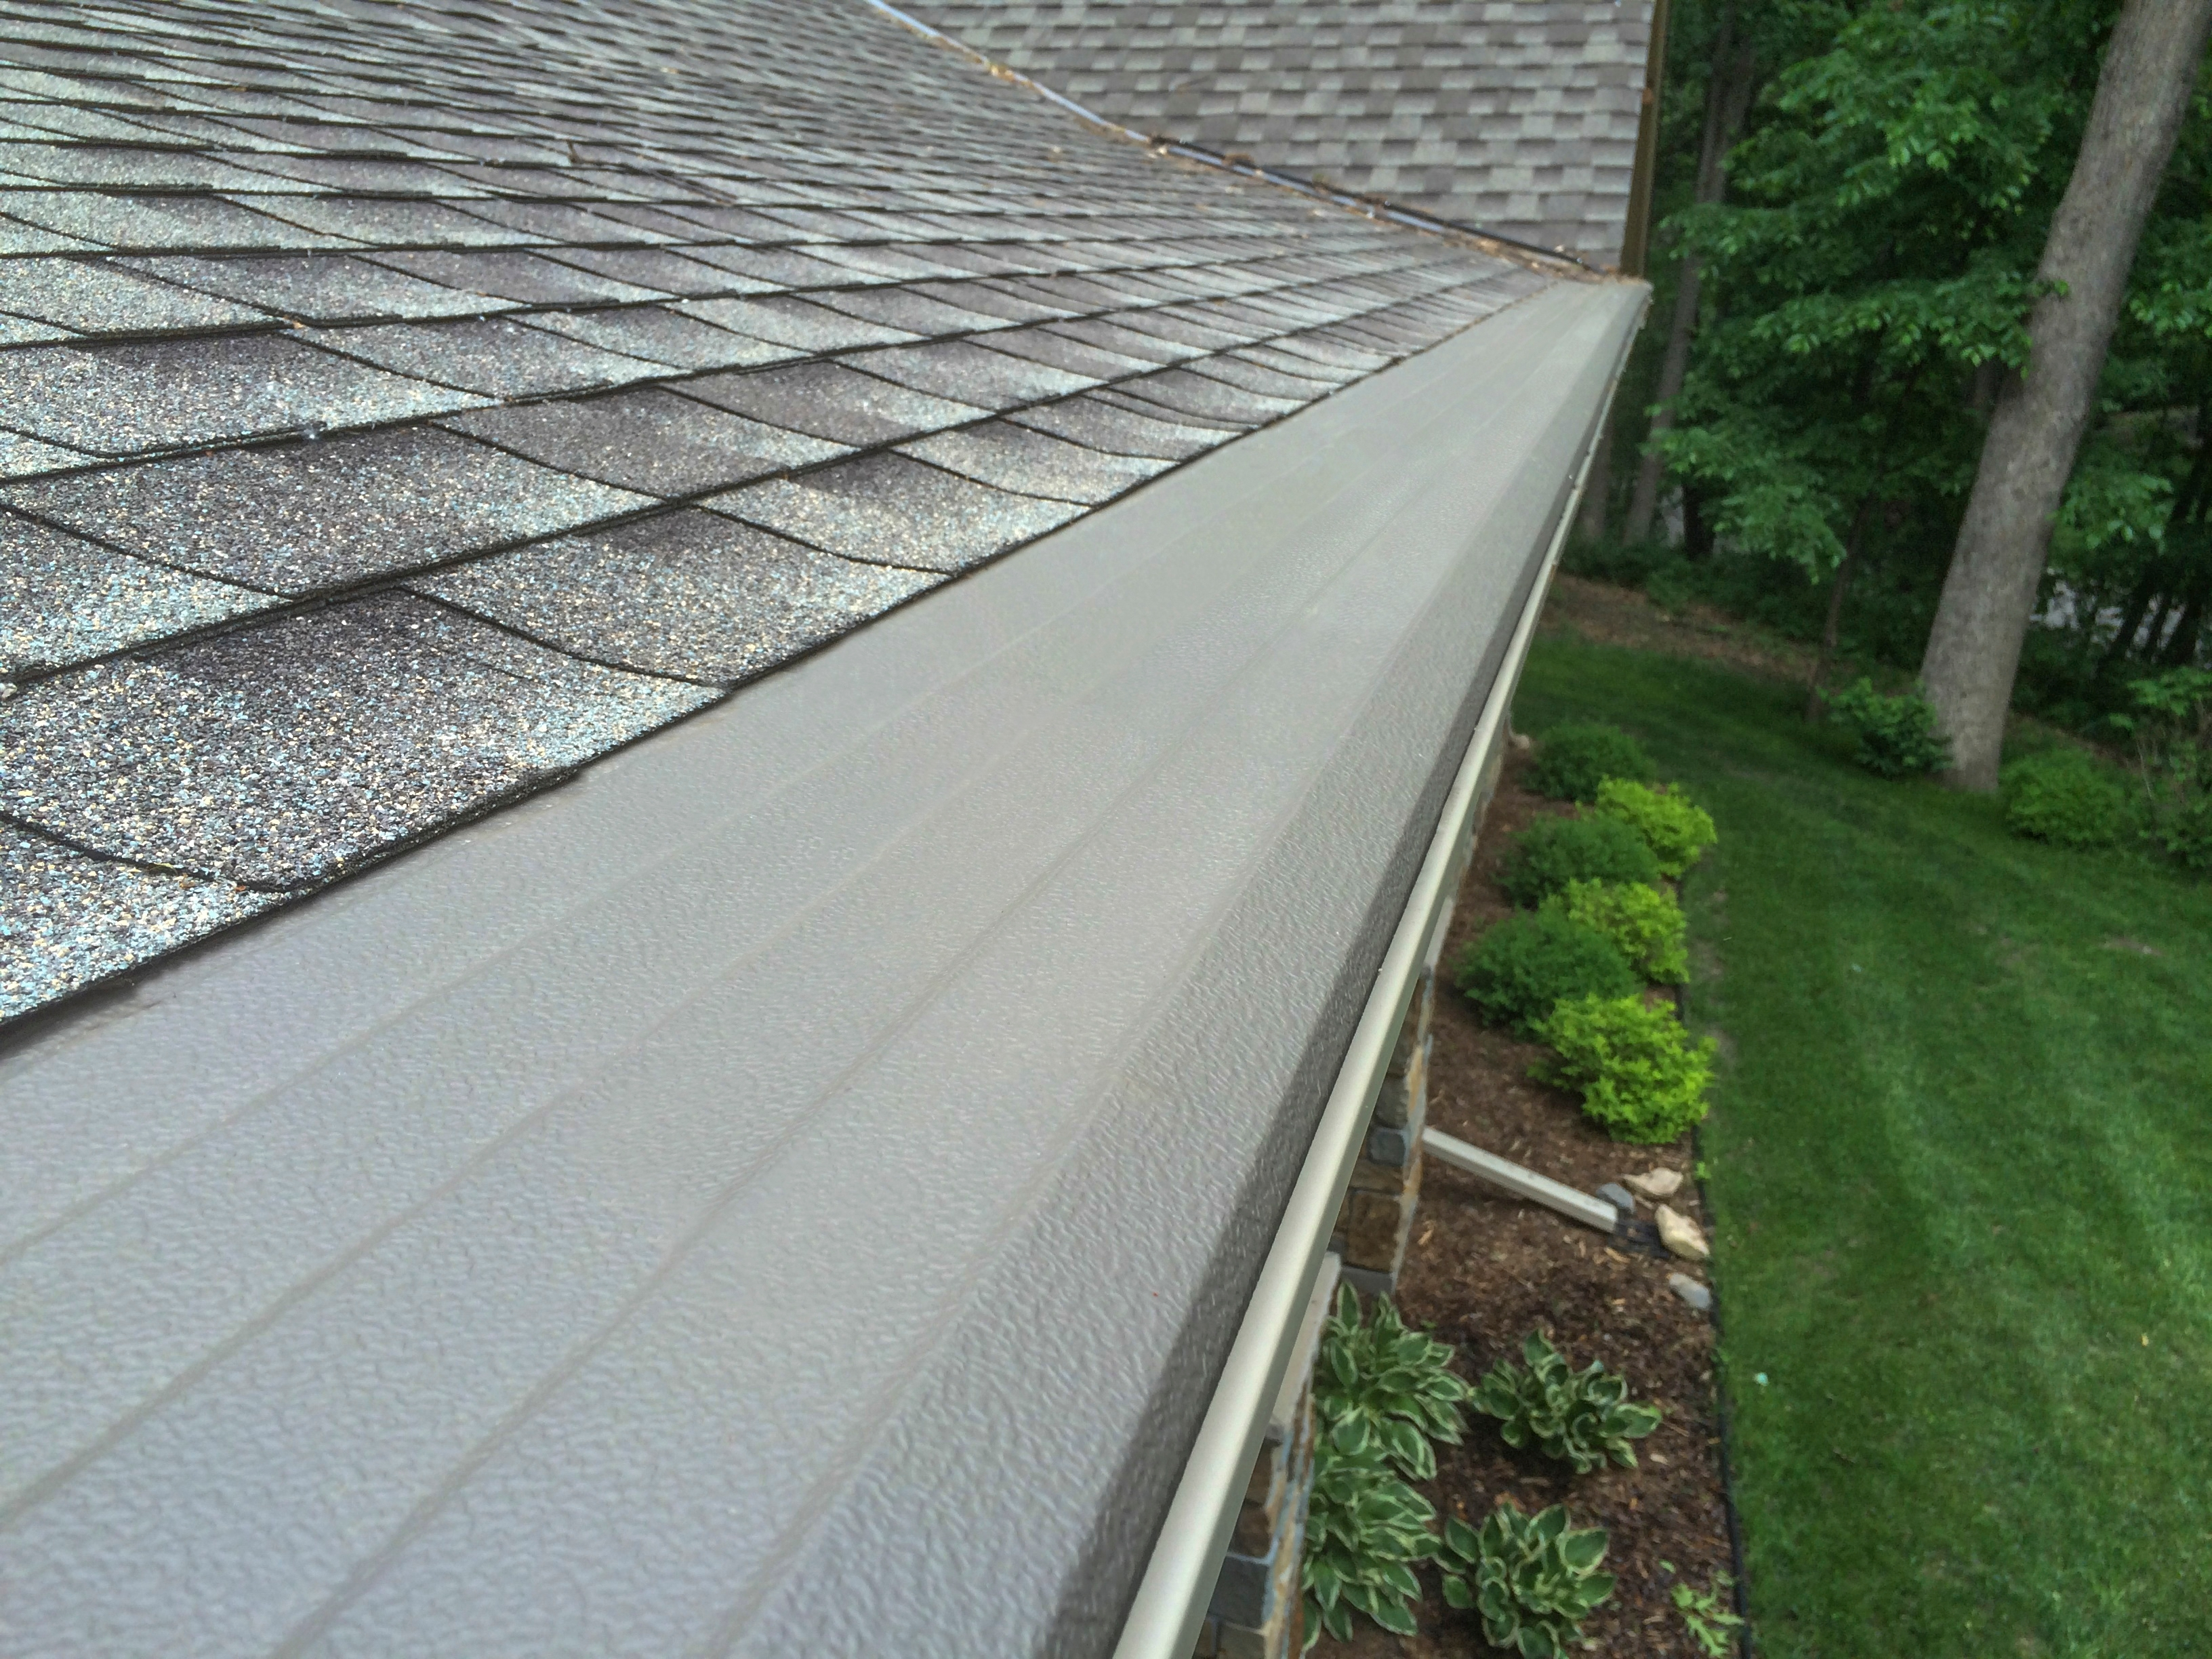 Lask Roofing & Siding, Inc image 2